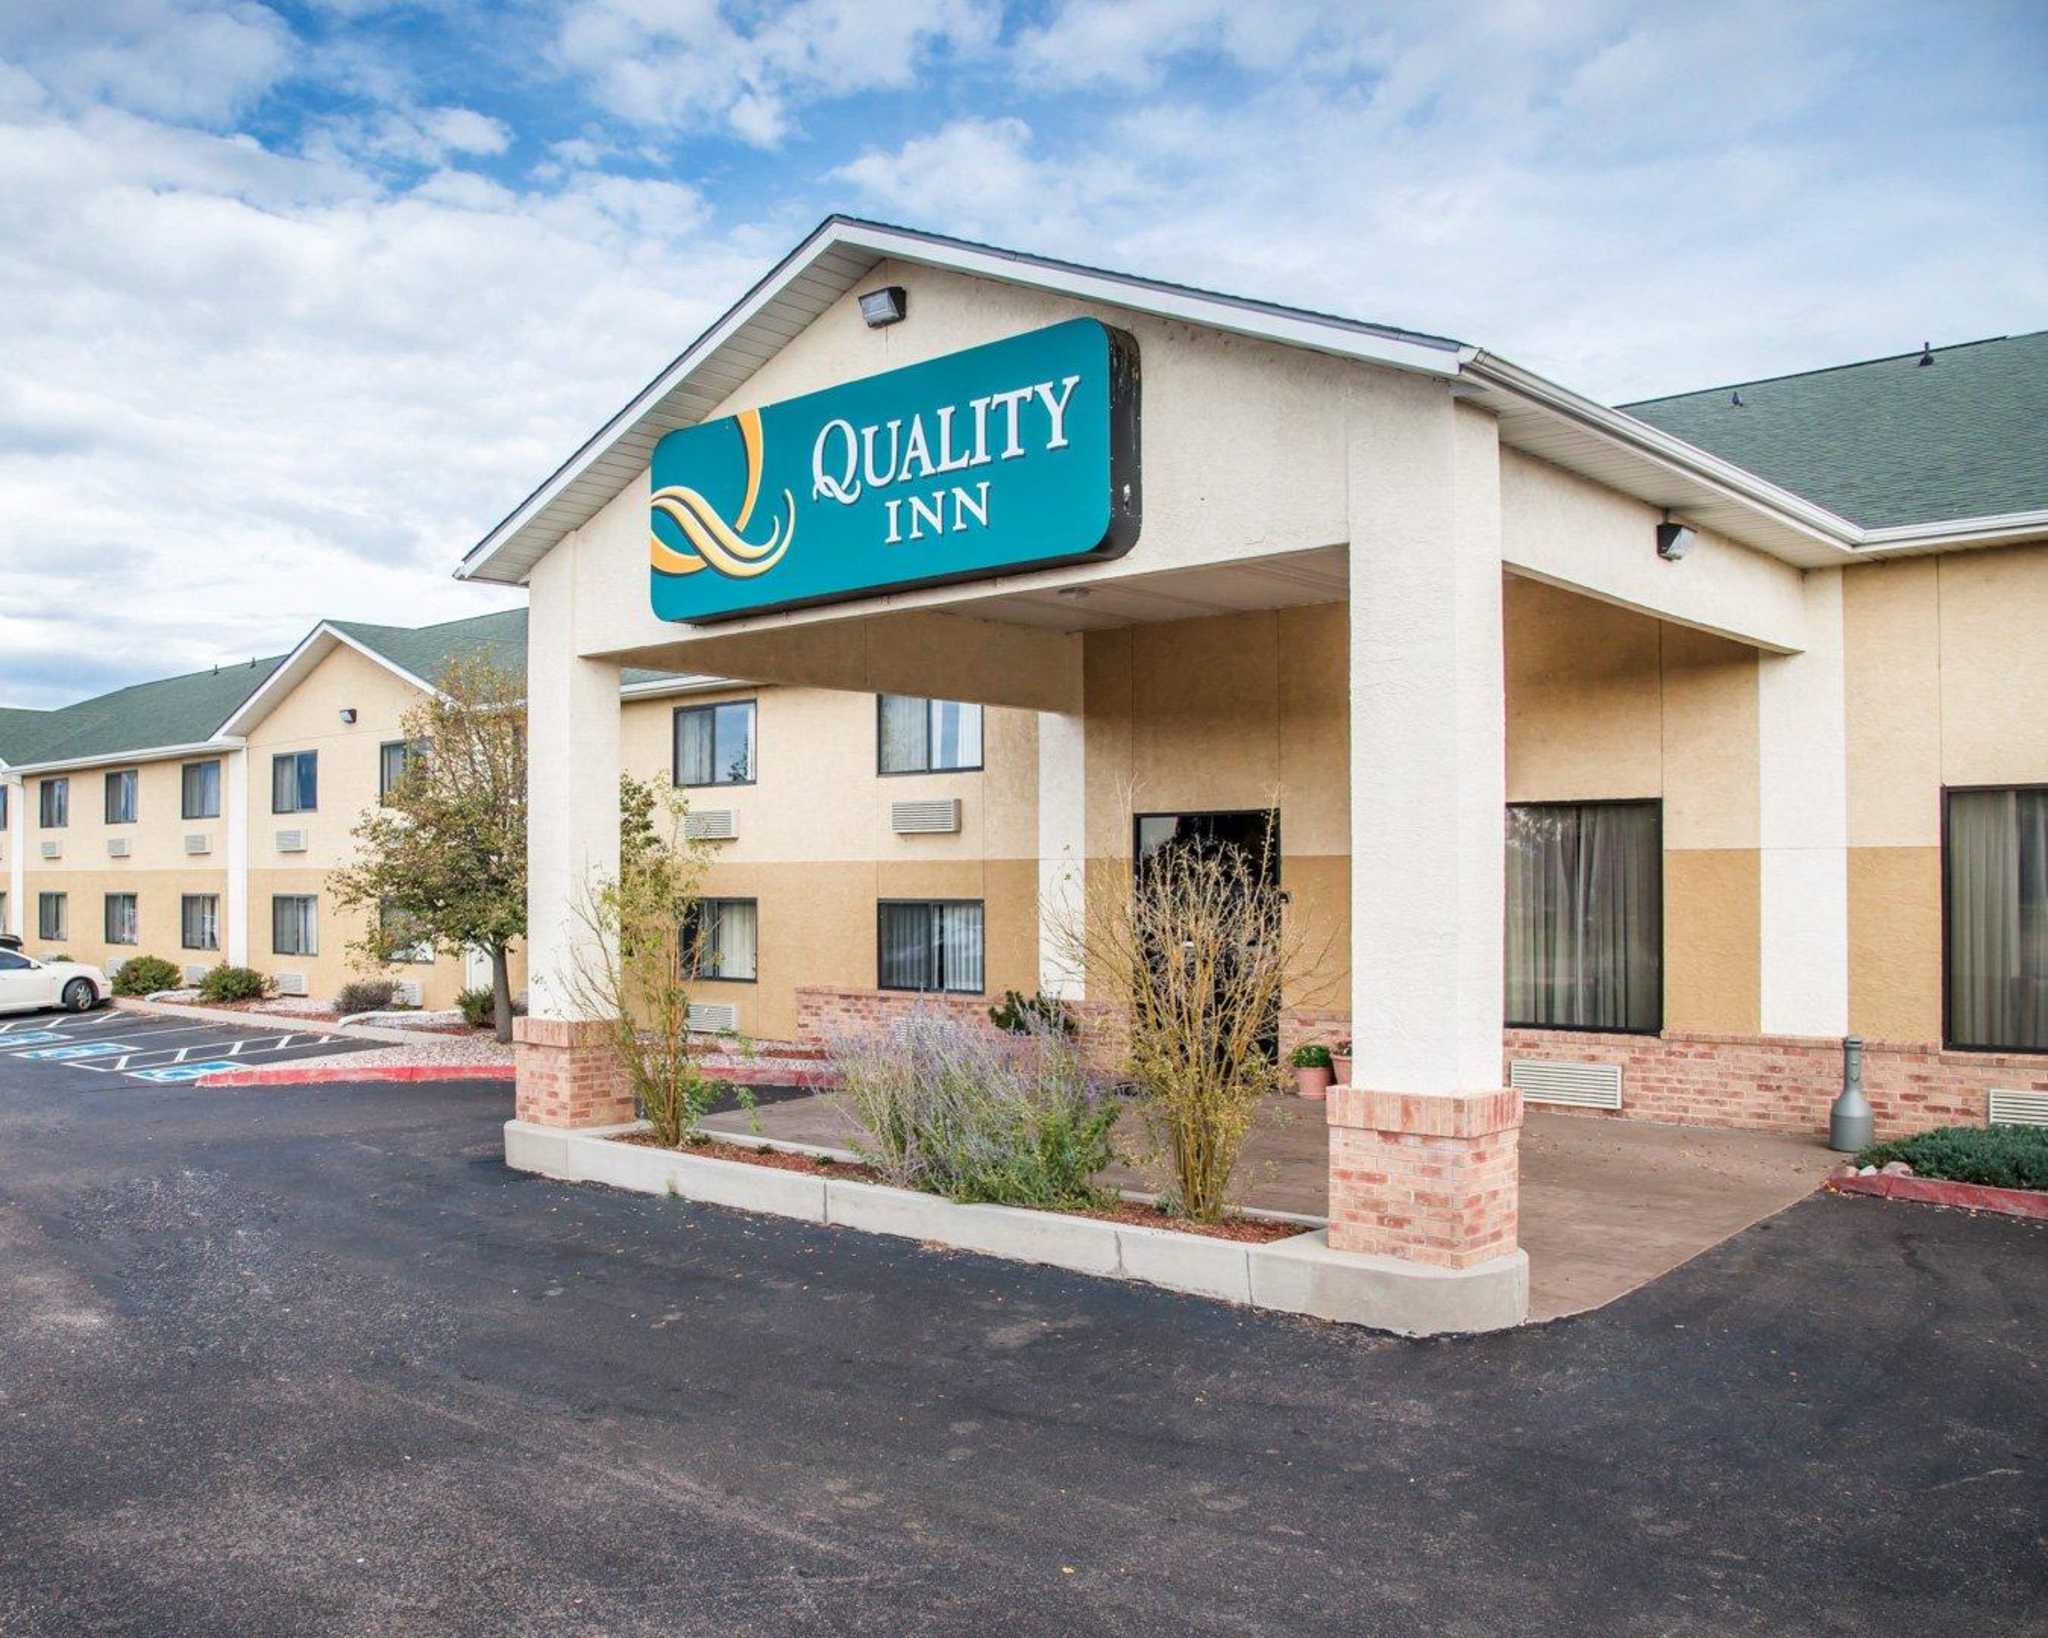 Quality Inn Colorado Springs Airport image 1